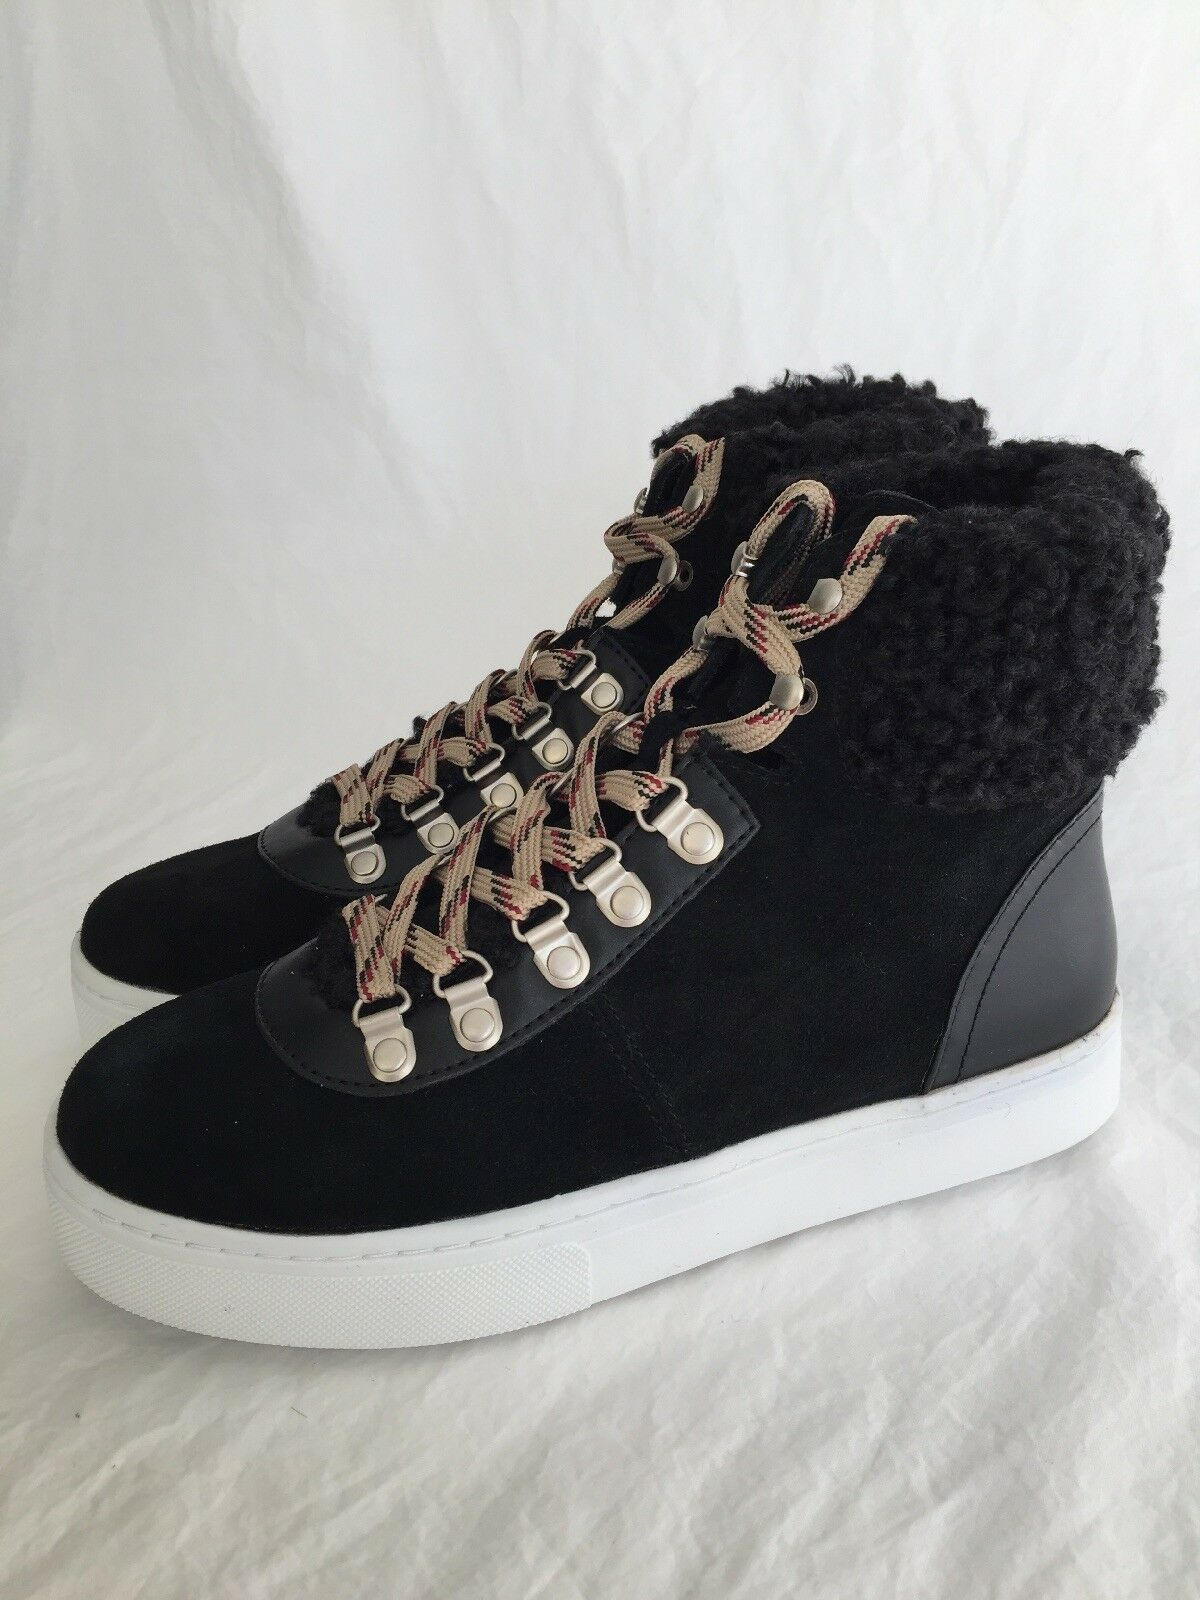 Sam Edelman Luther Noir Faux Shearling Suede High Top baskets Chaussures Taille 7.5 m